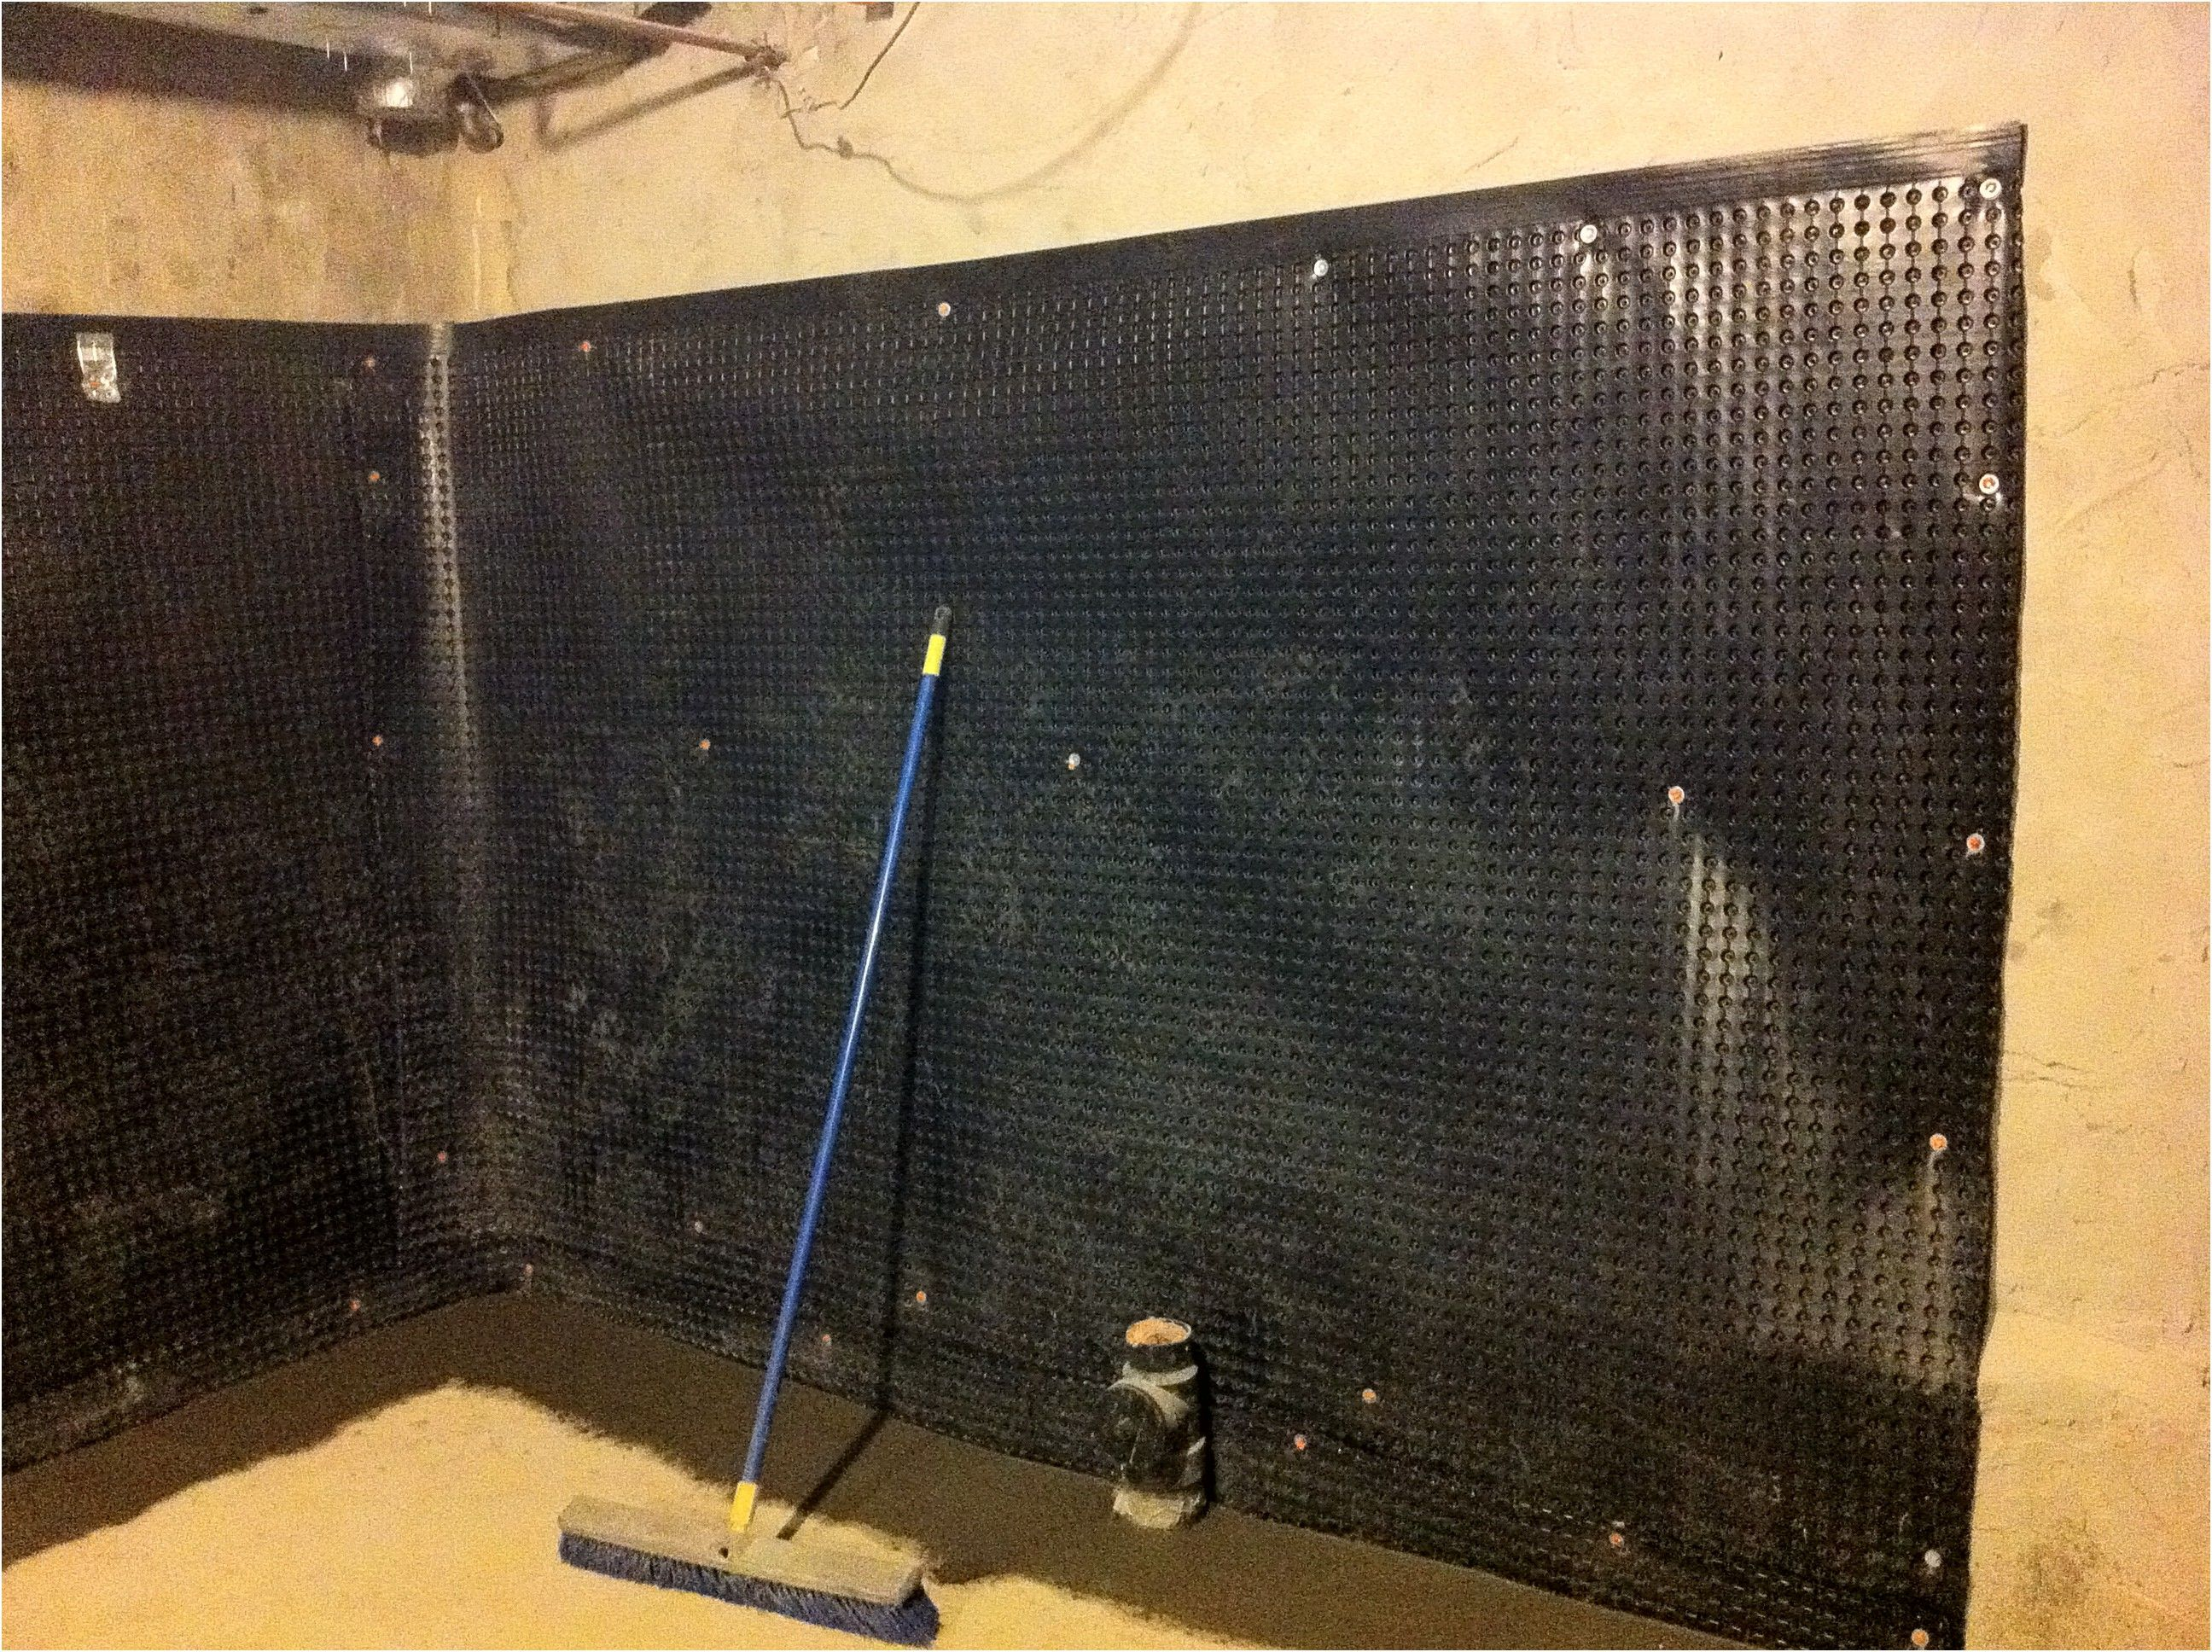 Interior Basement Waterproofing Products Electric Tools For Home From Waterproofing  Inside Basement Walls